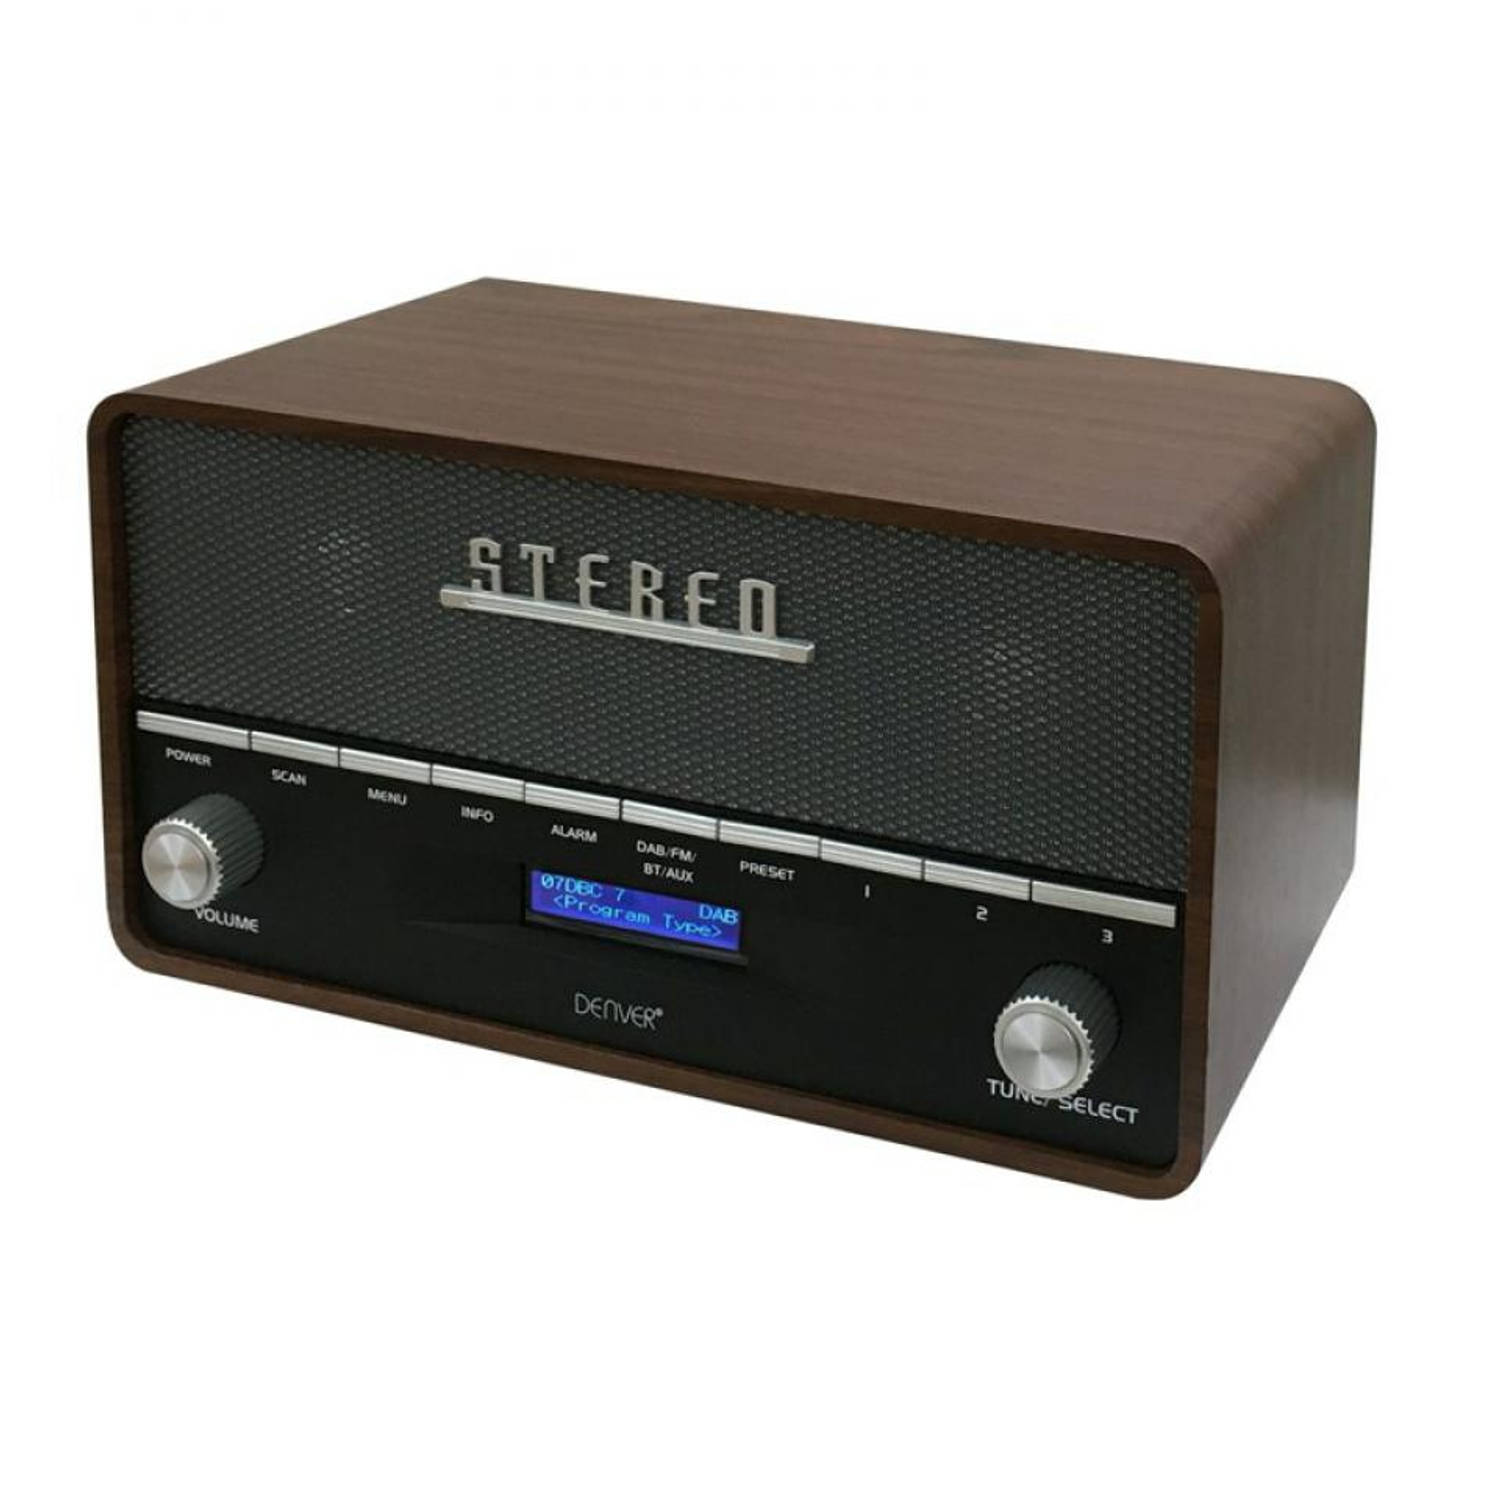 Denver radio DAB-36